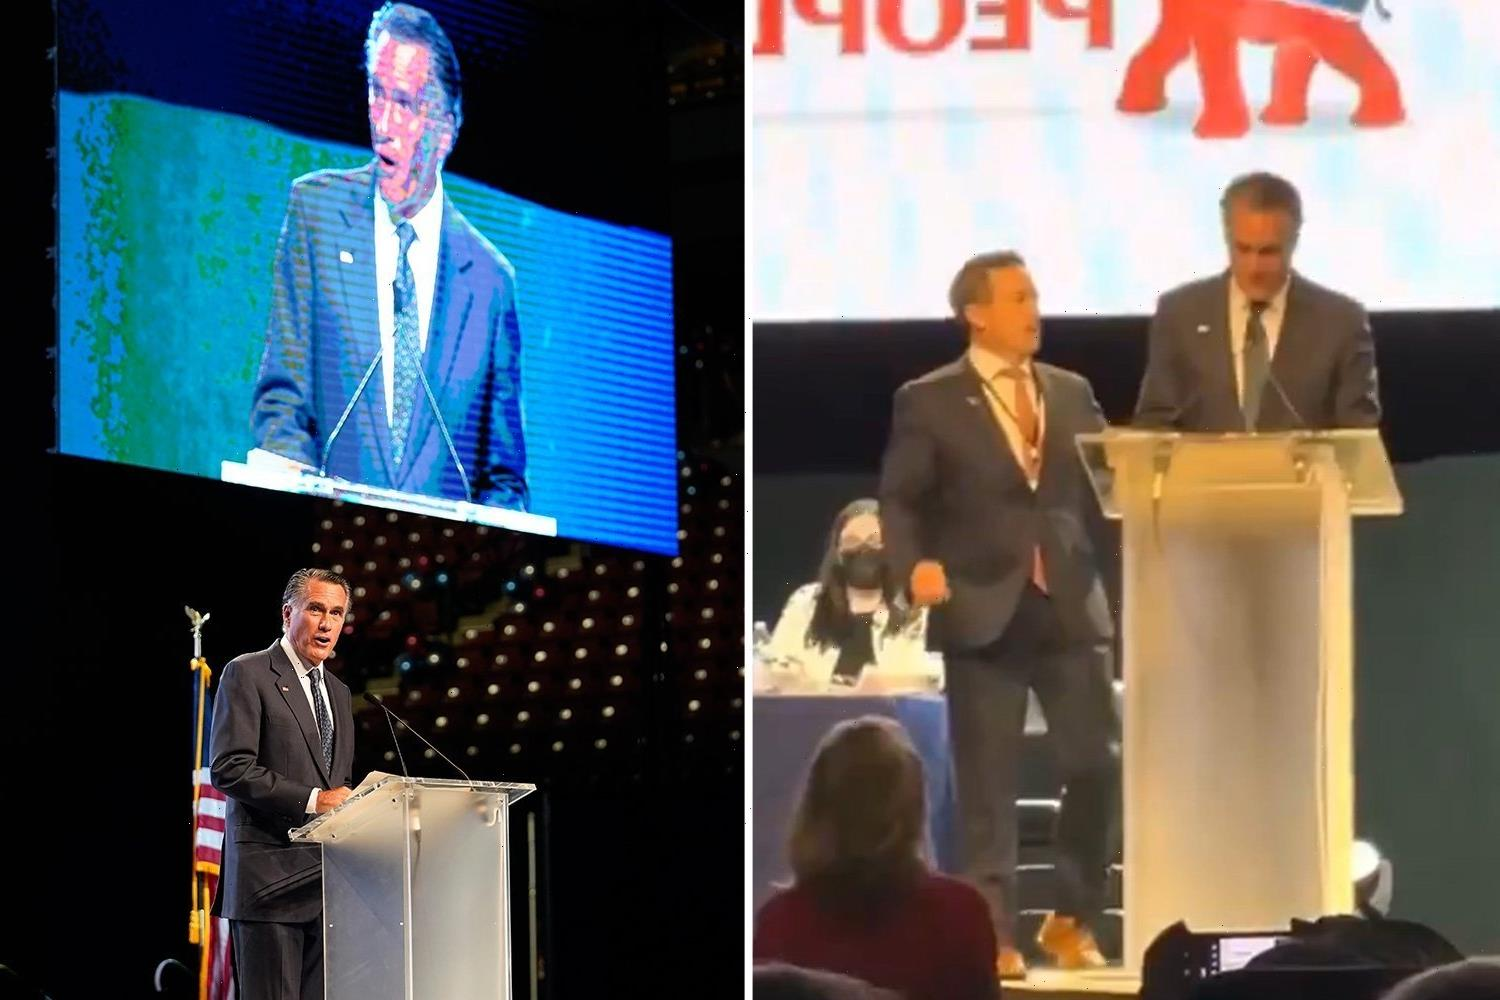 Romney hits back saying 'aren't you embarrassed?' after Utah GOP delegates boo him & call him 'traitor & 'communist'